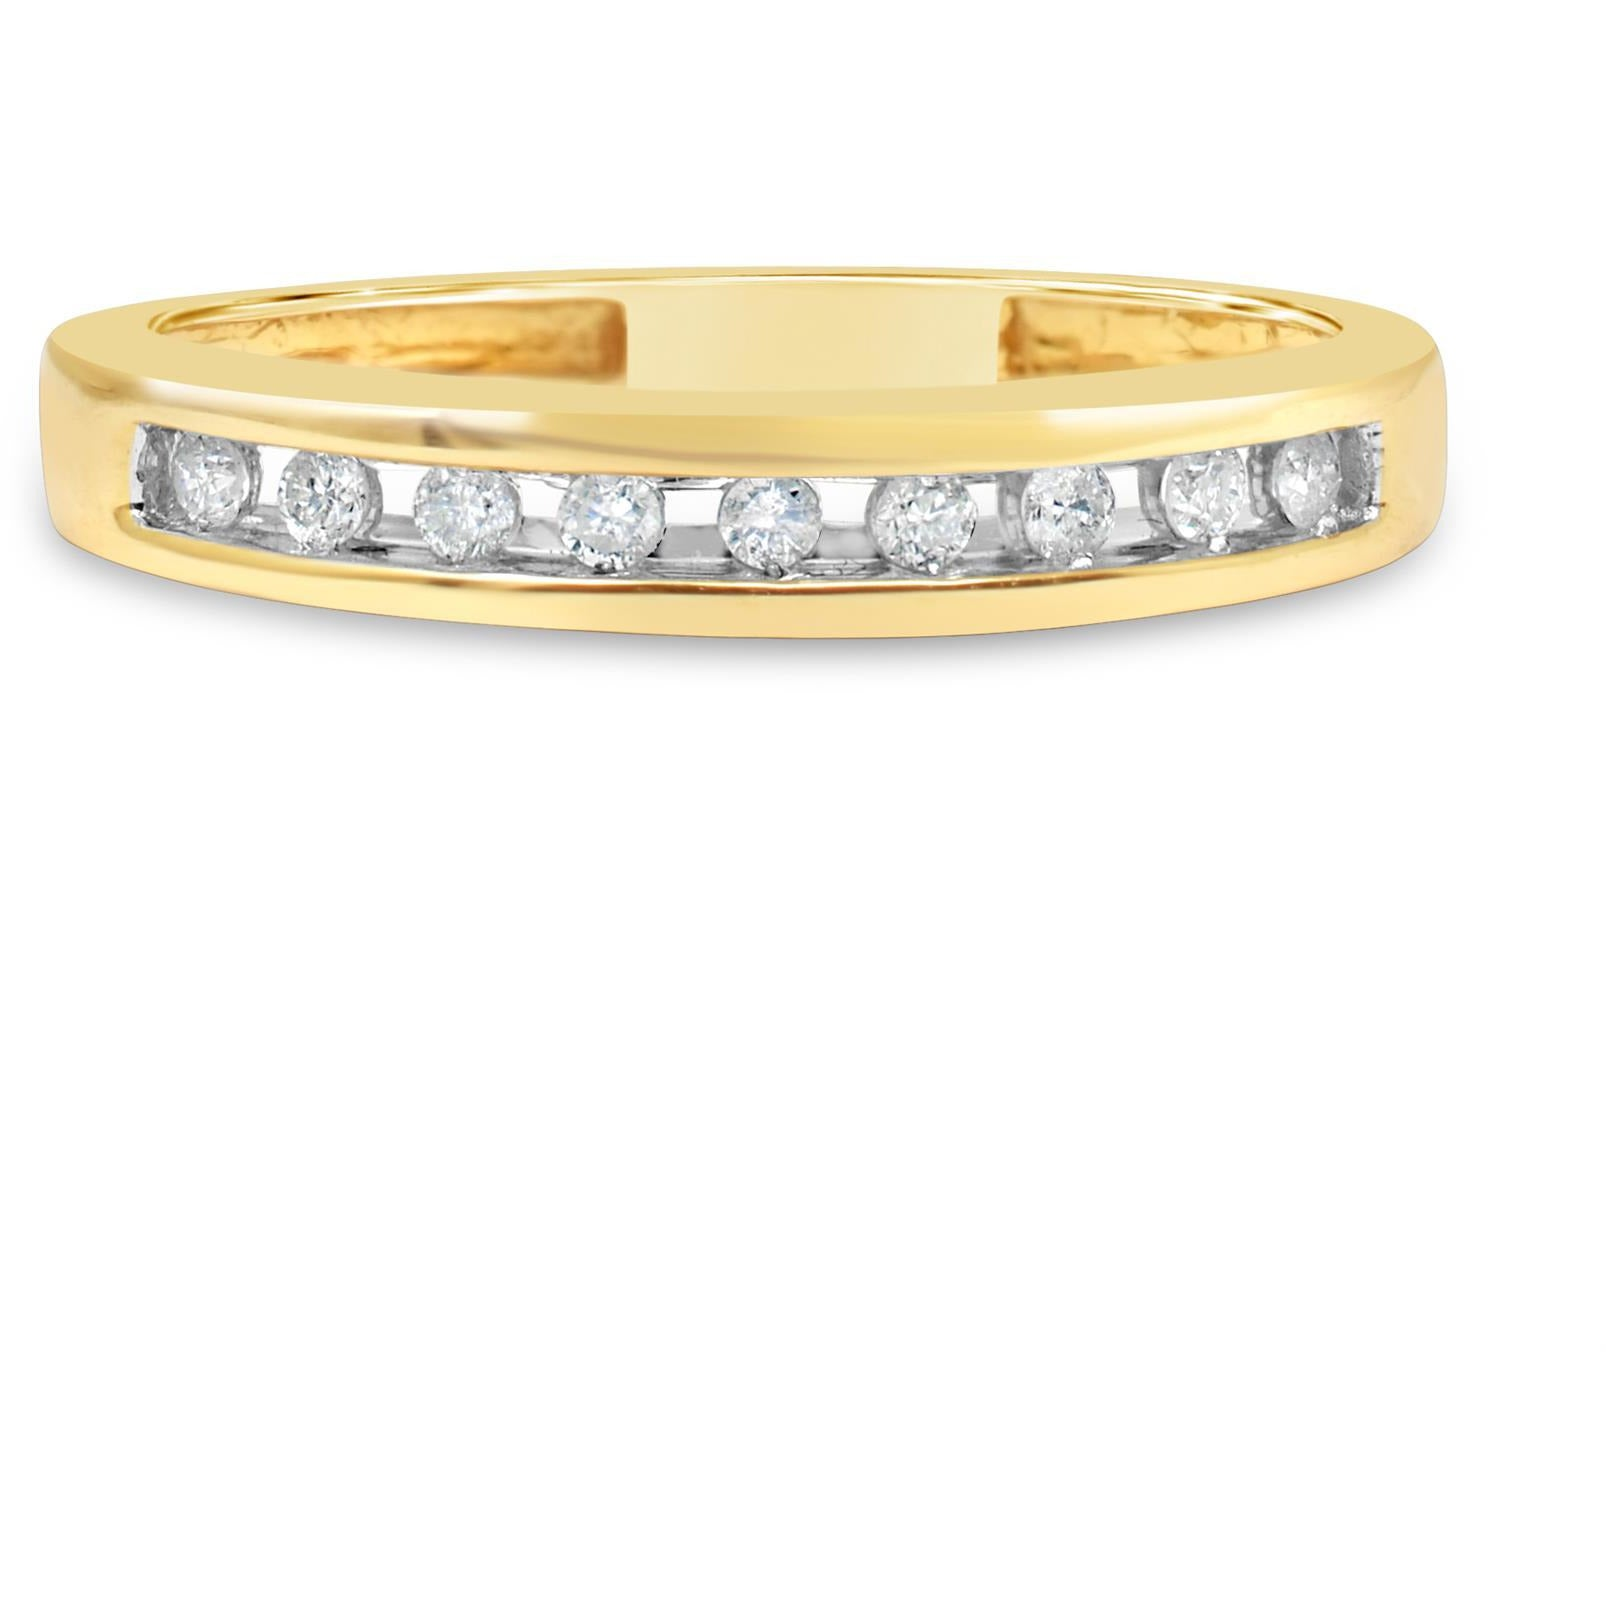 eternity ring for women in yellow gold ring with channel of stunning natural diamonds